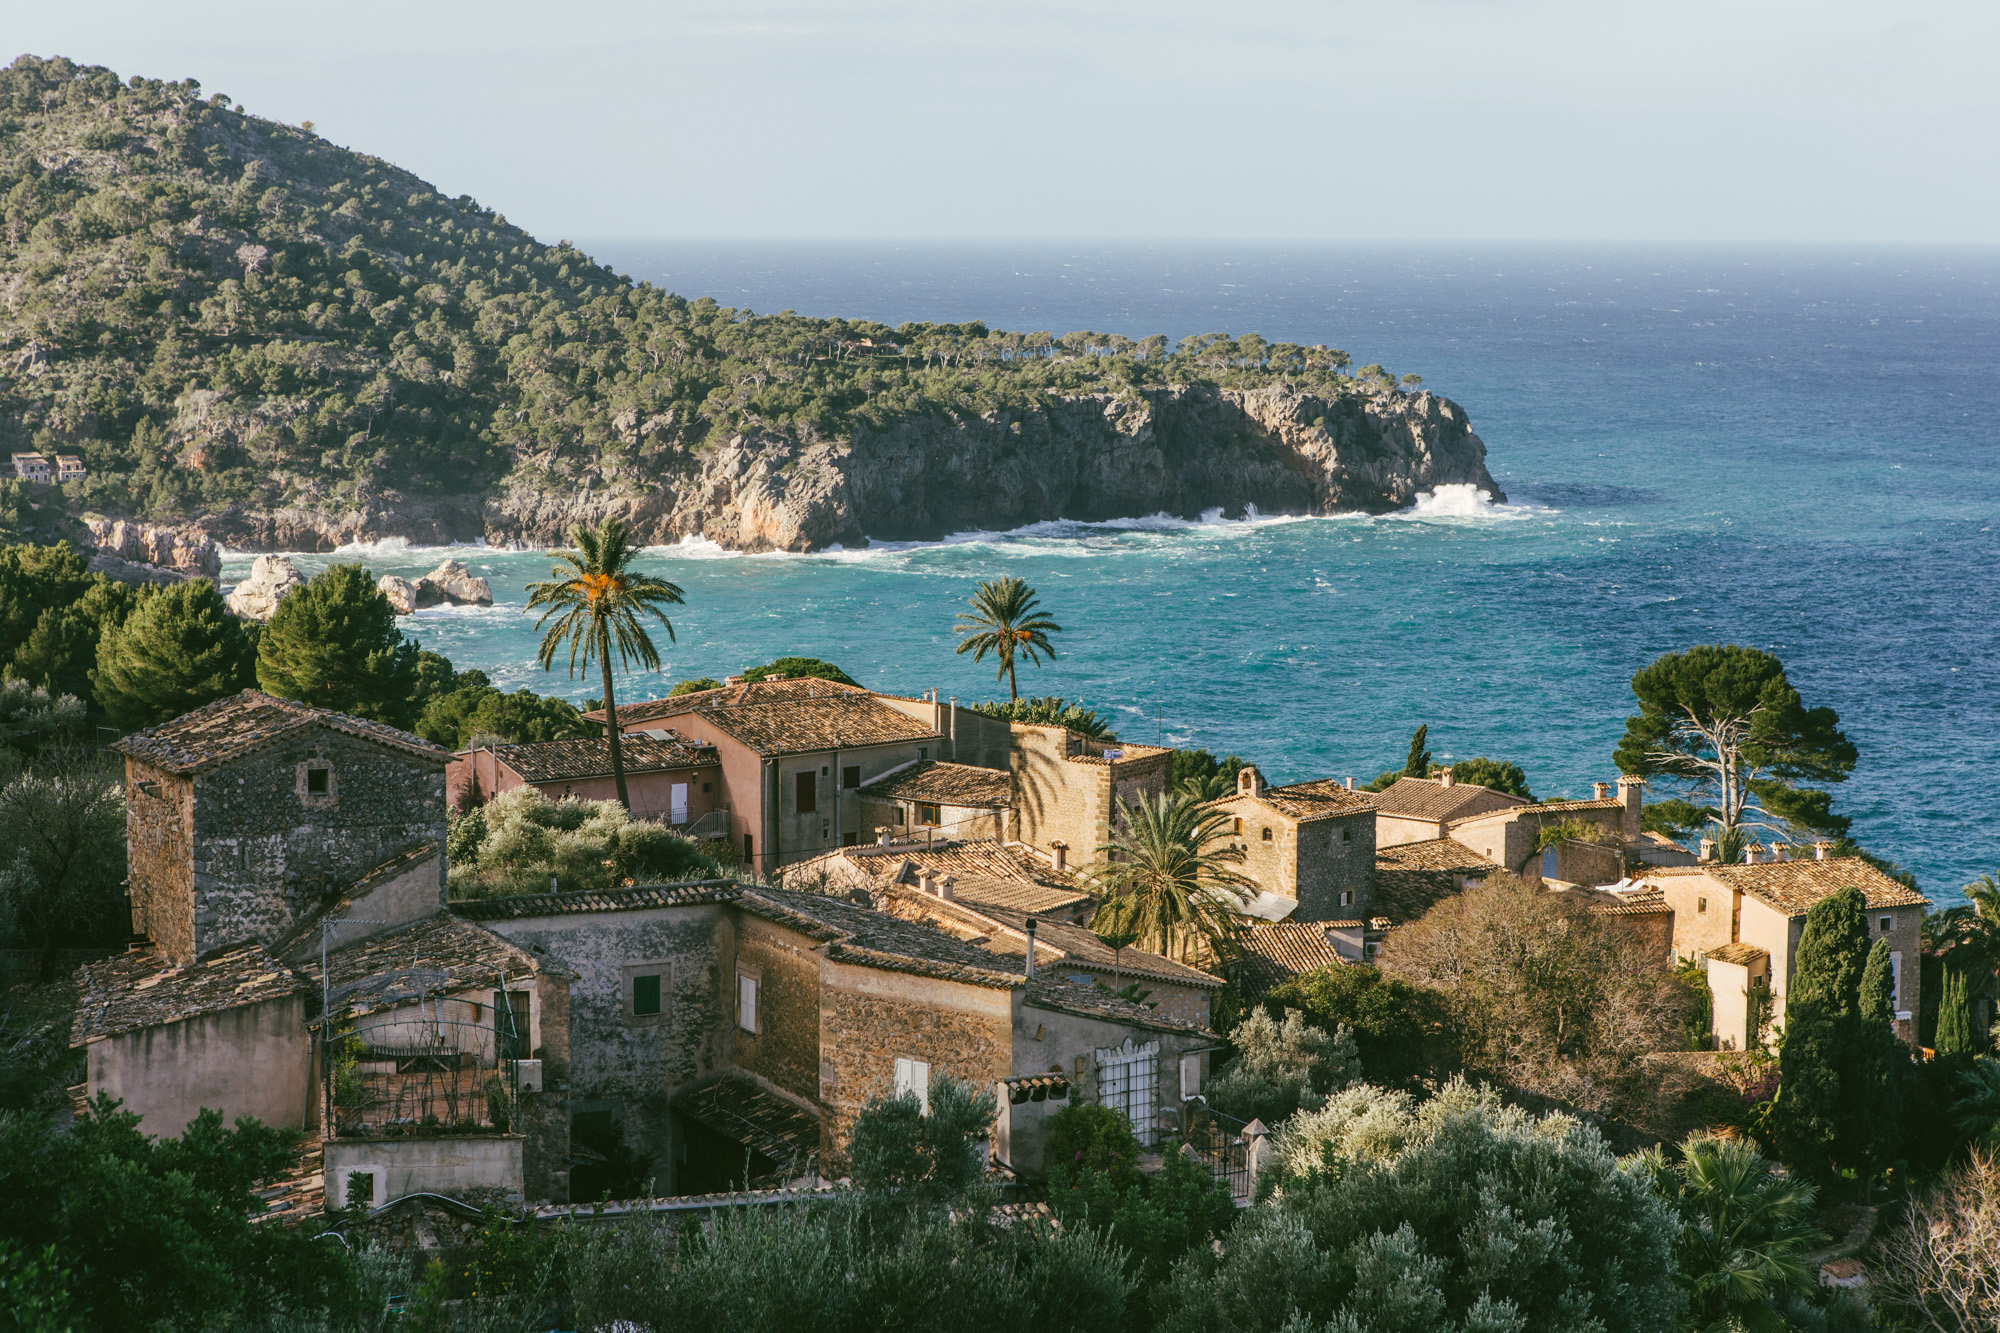 Once you pass Deiá coming from the west, you can look left and back to the views and find this stunning piece of coast.